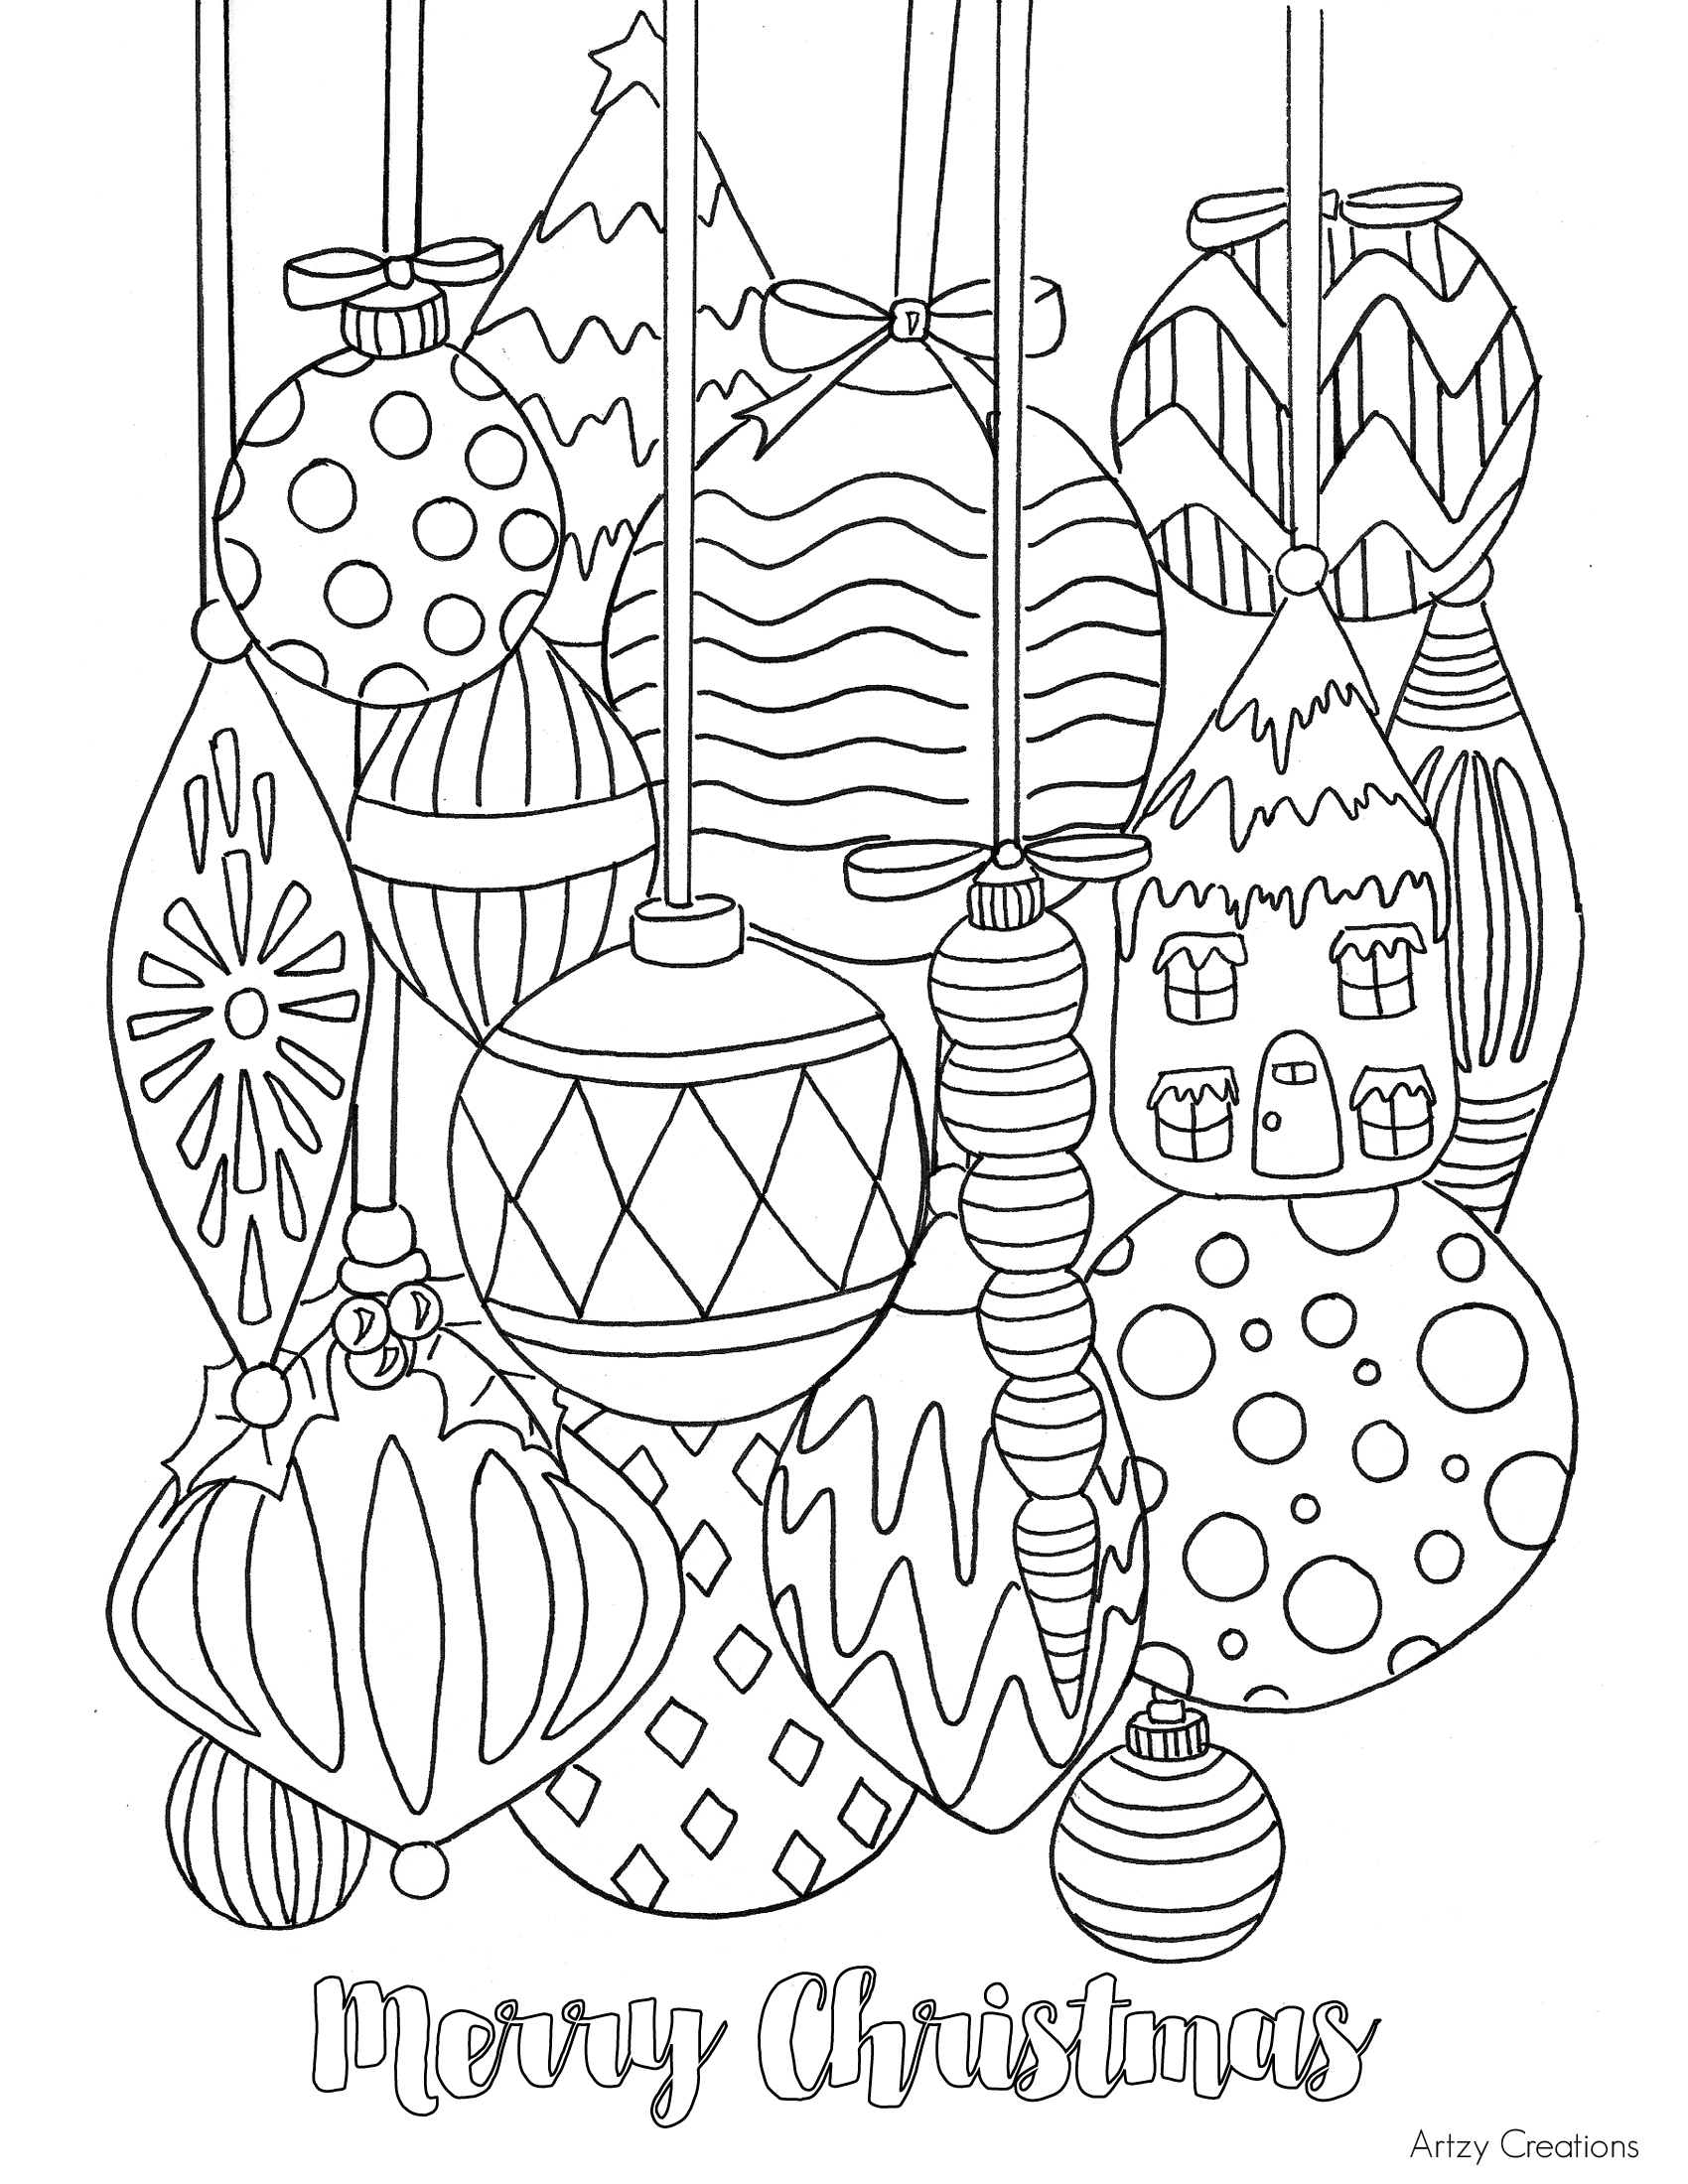 Great DOWNLOAD YOUR FREE CHRISTMAS ORNAMENT COLORING PAGE HERE!